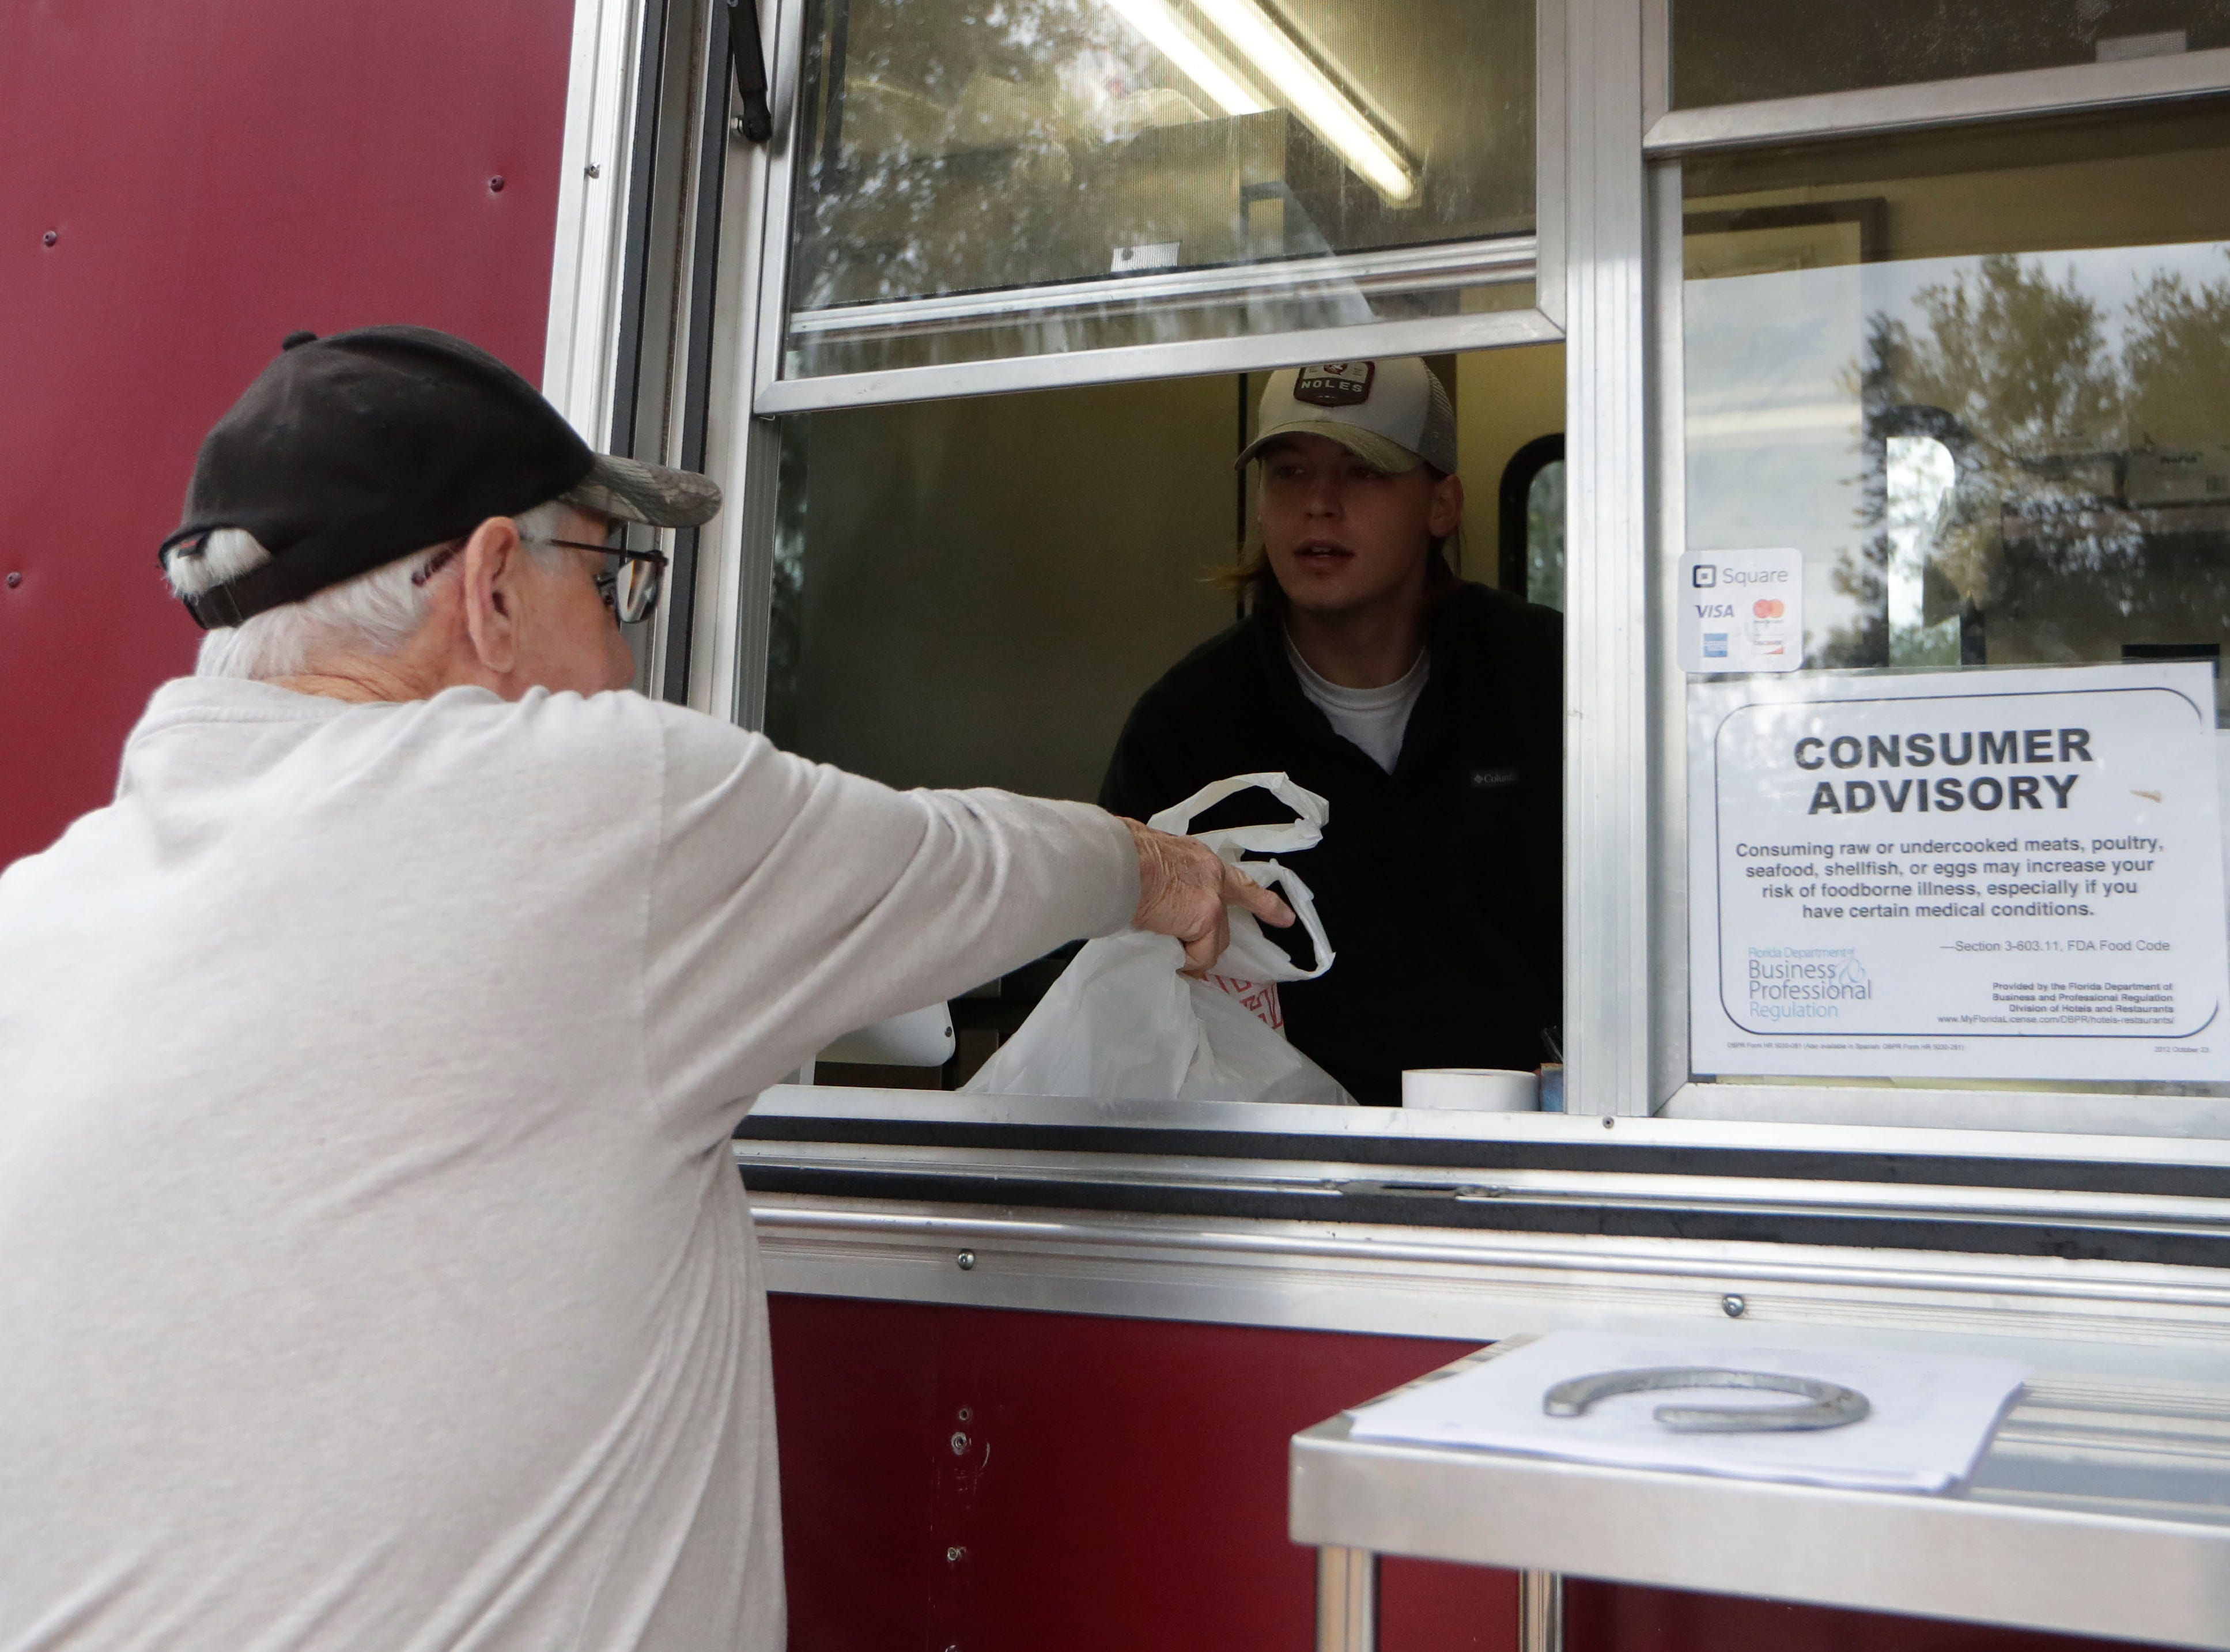 Preston Strickland picks up an order he placed over the phone at the Spring Creek Restaurant food truck in Crawfordville, Fla., Friday, Feb. 1, 2019.